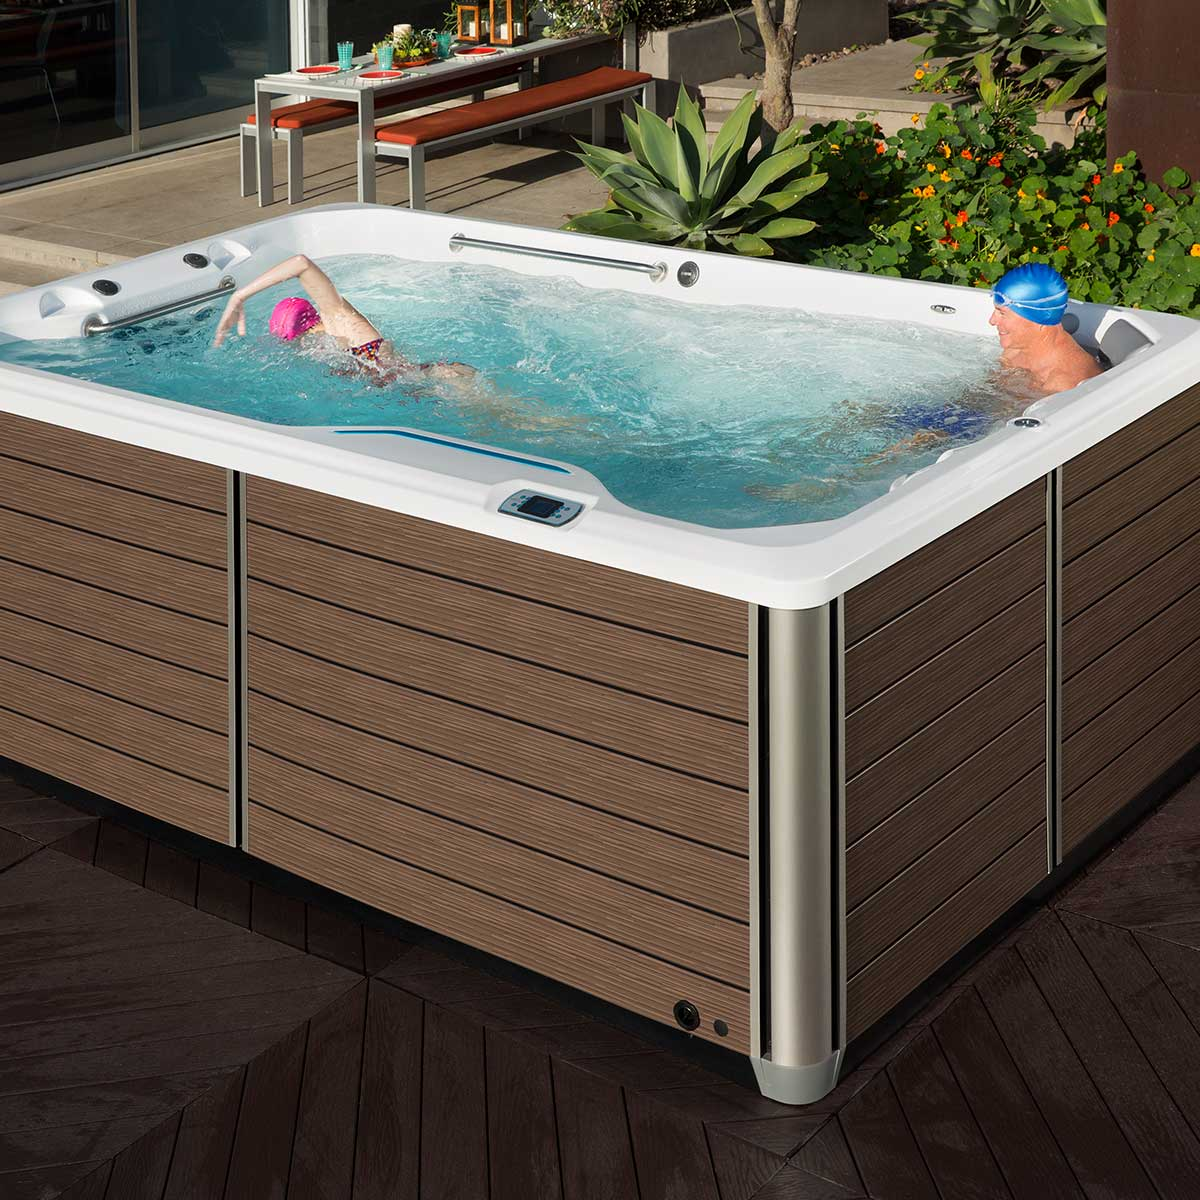 10 Differences between Traditional Pools and Our Pools